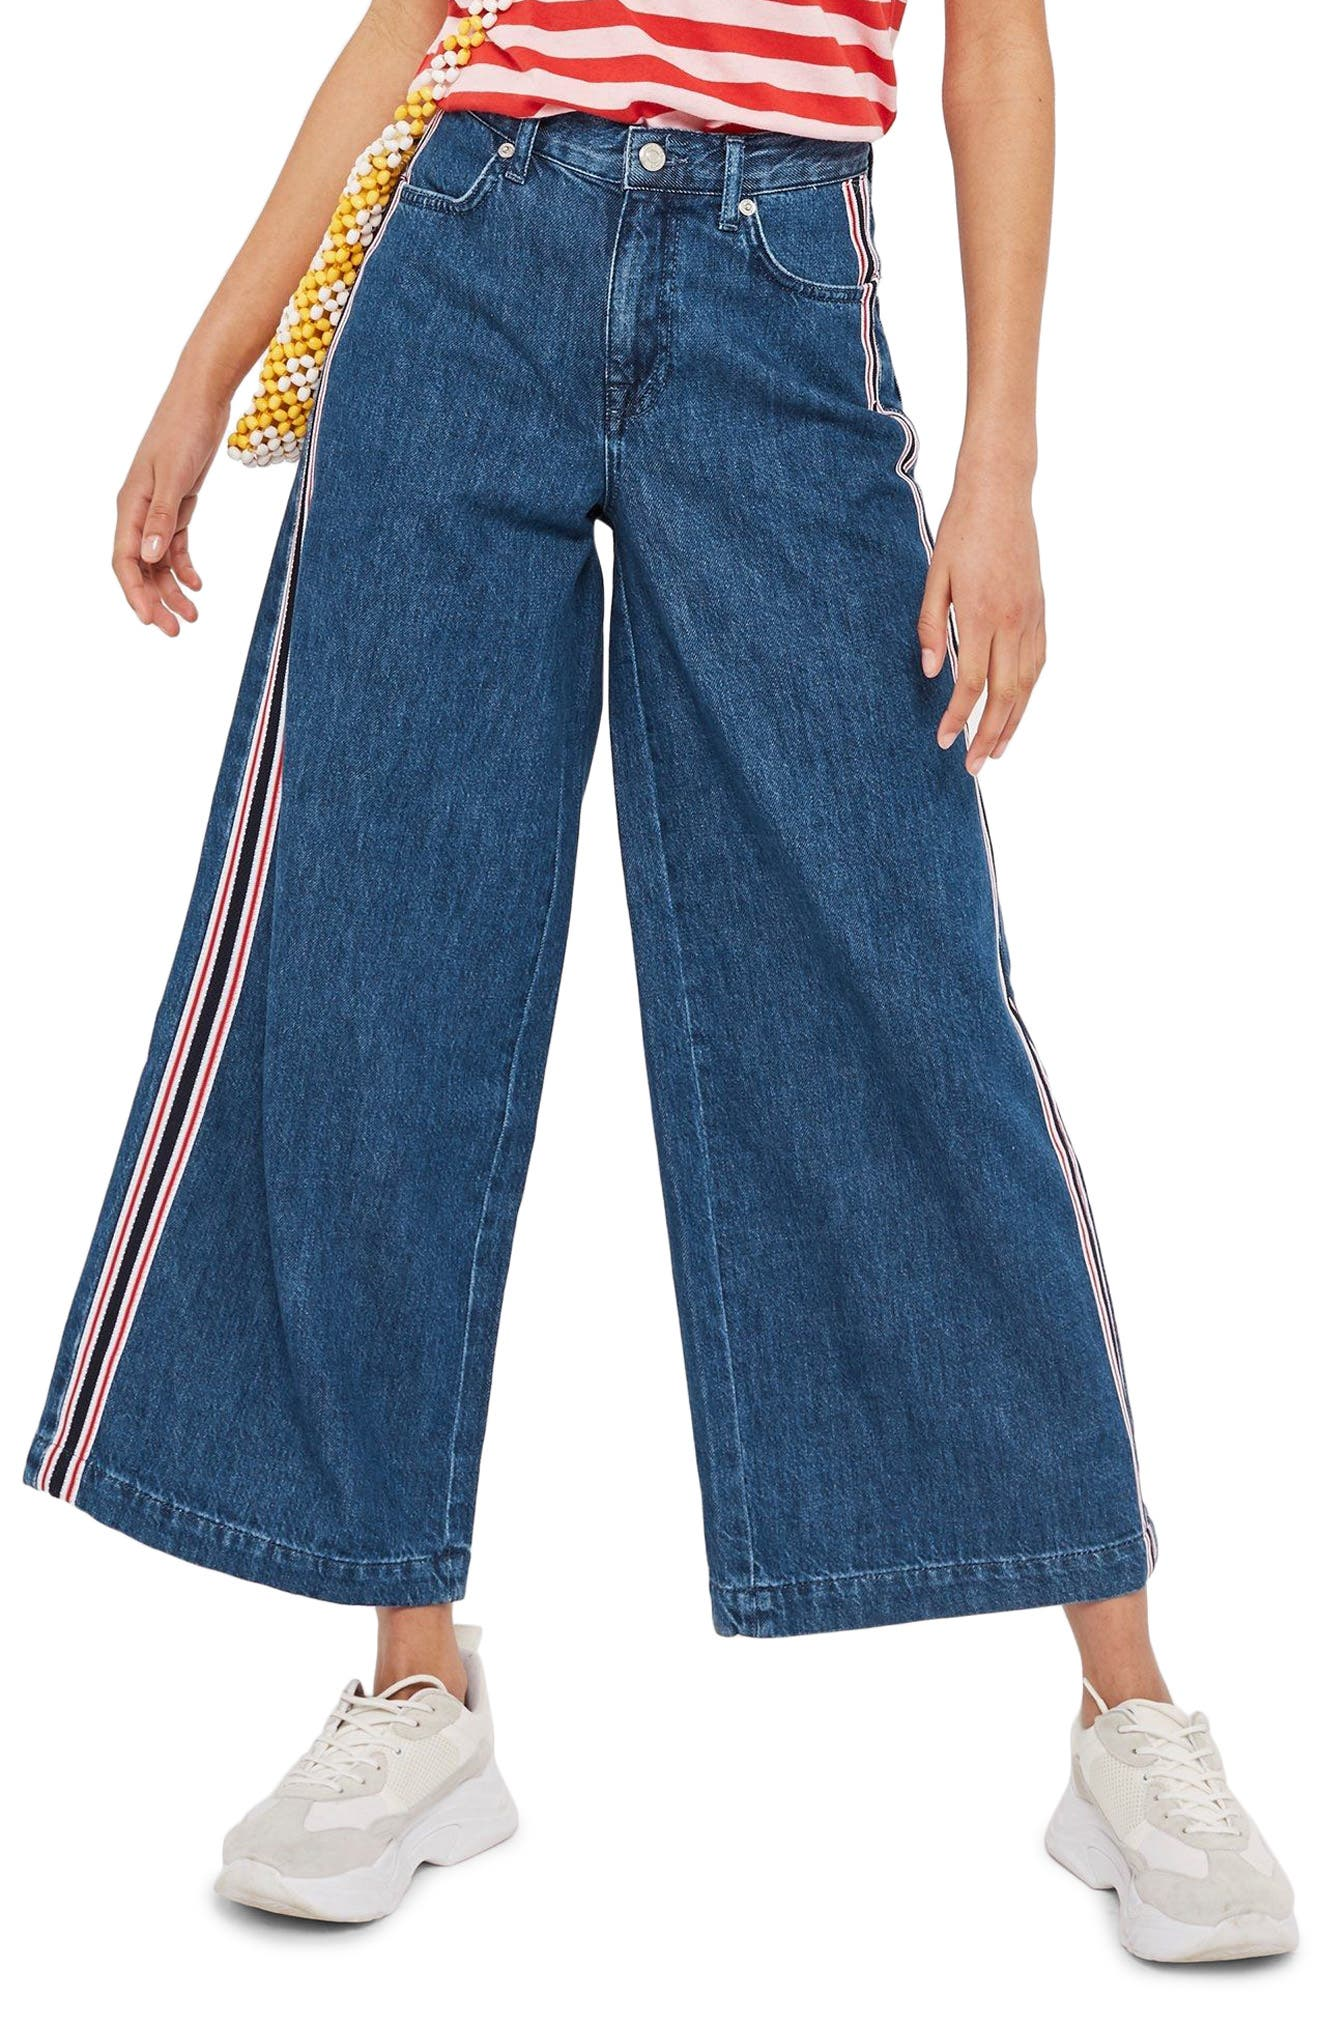 MOTO Stripe Wide Leg Non-Stretch Jeans,                             Main thumbnail 1, color,                             Blue Multi